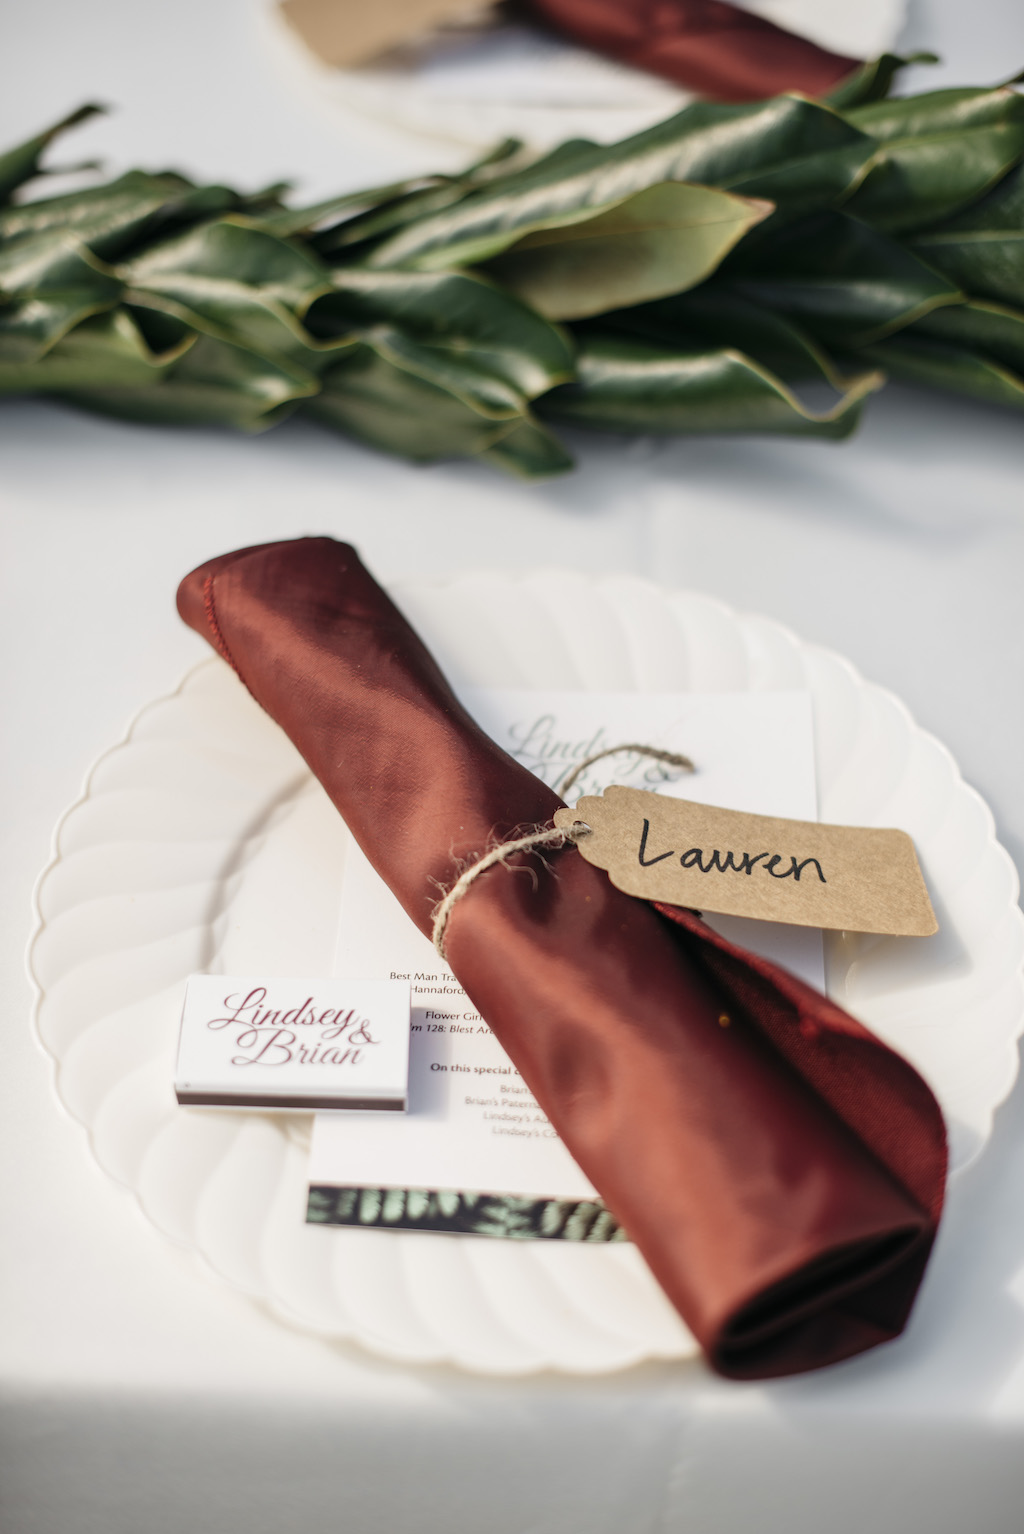 Wedding Reception Decor, White Plate with Burgundy Silk Linen | Tampa Bay Wedding Planner Kelly Kennedy Weddings and Events